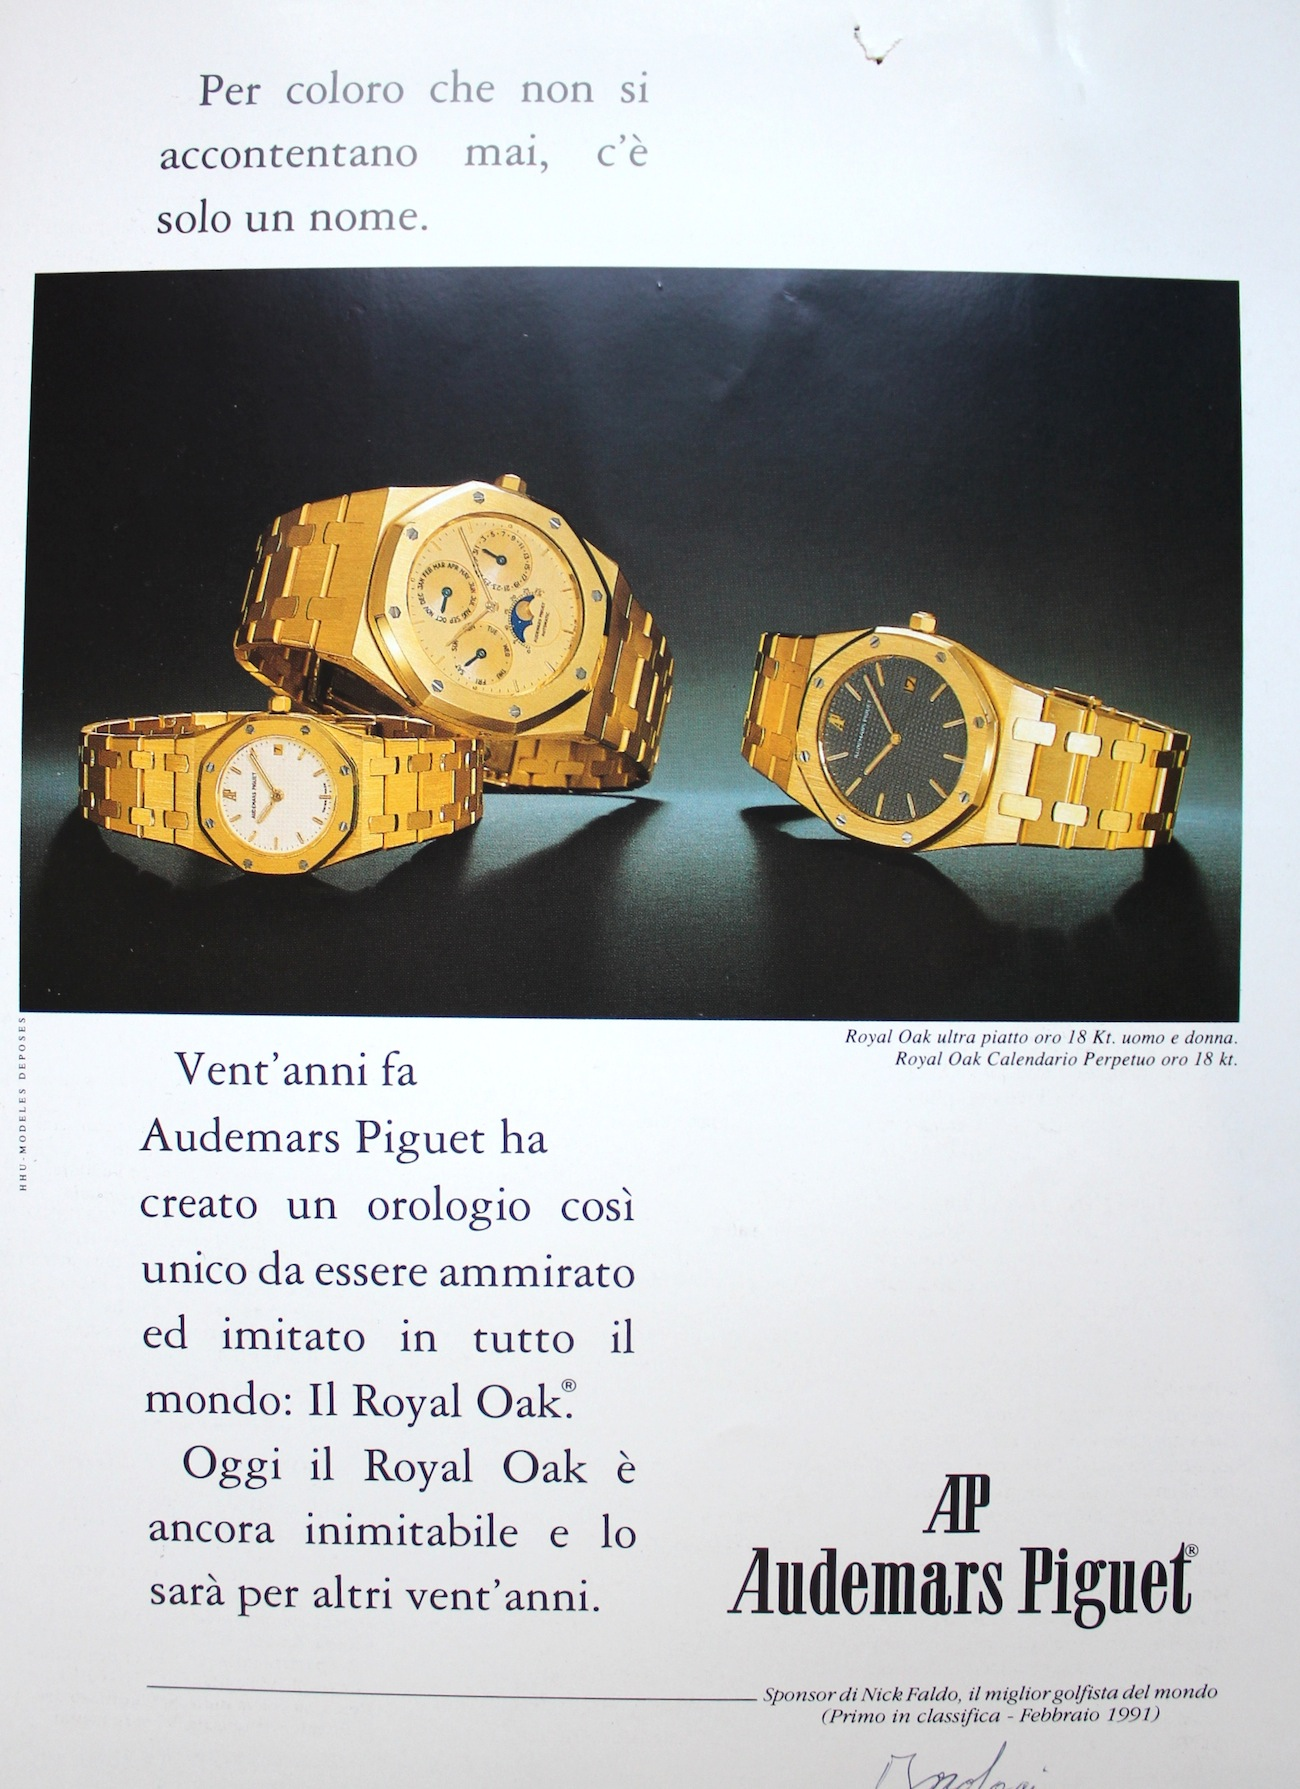 Royal Oak Advertisement circa 1991-1992. Translation of Advertisement in Italian:   For those who   are never satisfied , there is only one  name.      Twenty  years ago,  Audemars   Piguet   created   a watch   so unique   to be   admired and   often imitated all over the   world :  the Royal   Oak.   Today, the   Royal Oak   is still   unique   and cannot be imitated   for another   twenty years .